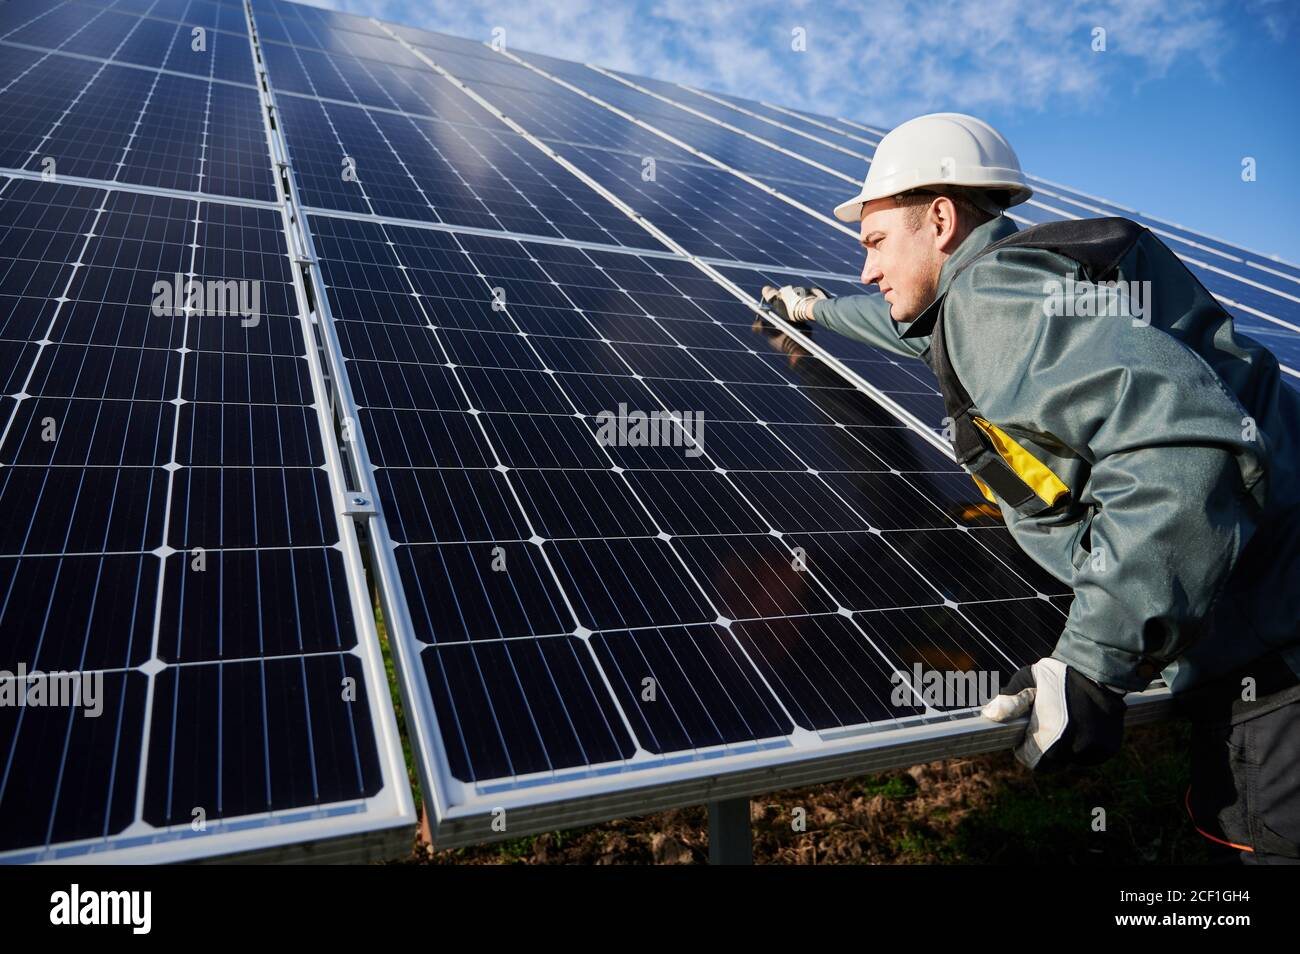 Professional worker, wearing protective suit, helmet and gloves, installing a photovoltaic solar batteries on a sunny day. Concept of alternative energy and power sustainable resources. Stock Photo